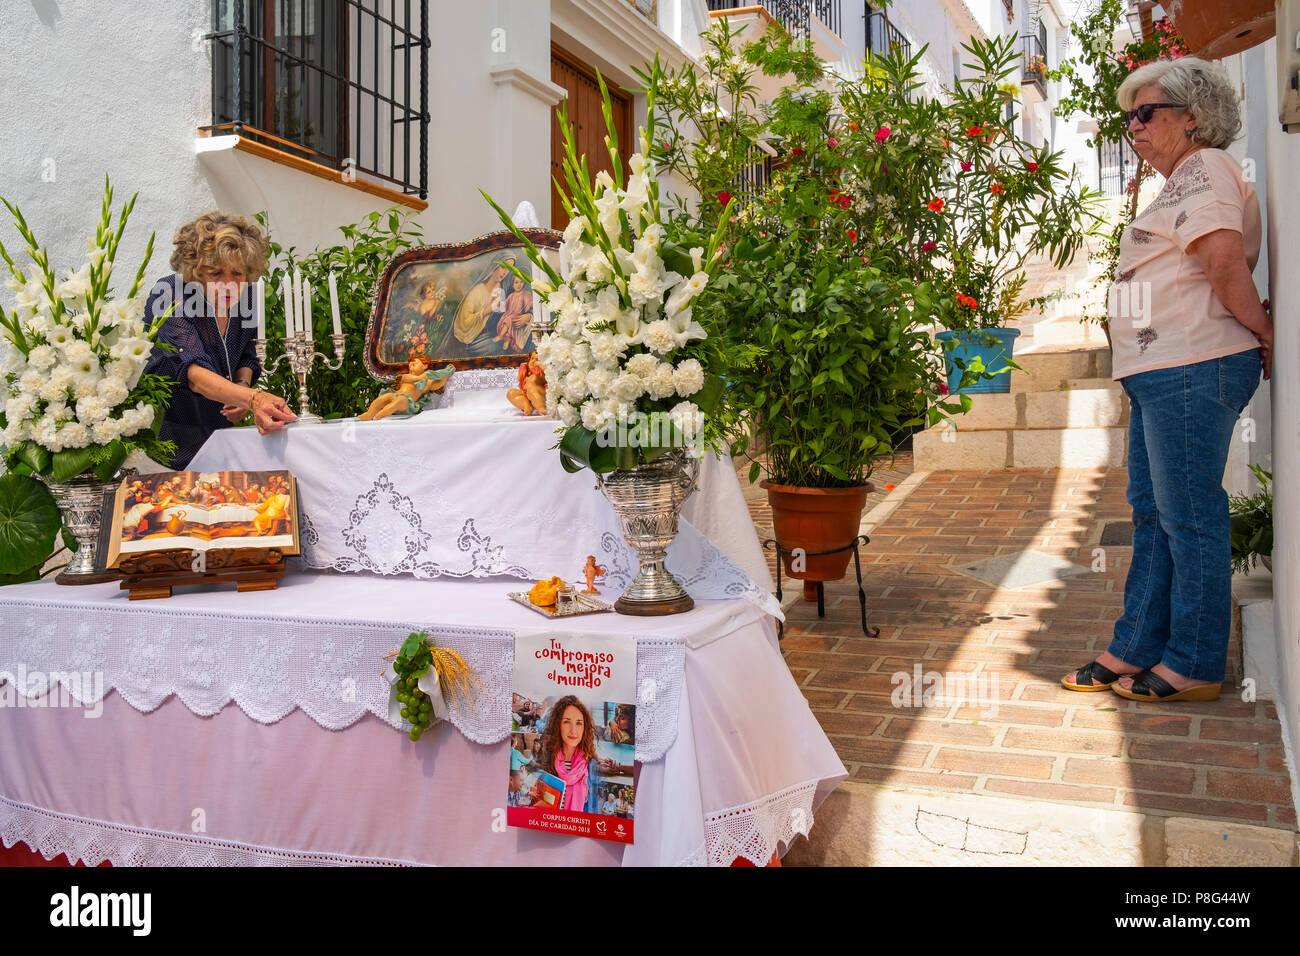 Celebration of Corpus Christi, typical white village of Mijas. Costa del Sol, Málaga province. Andalusia, Southern Spain Europe - Stock Image